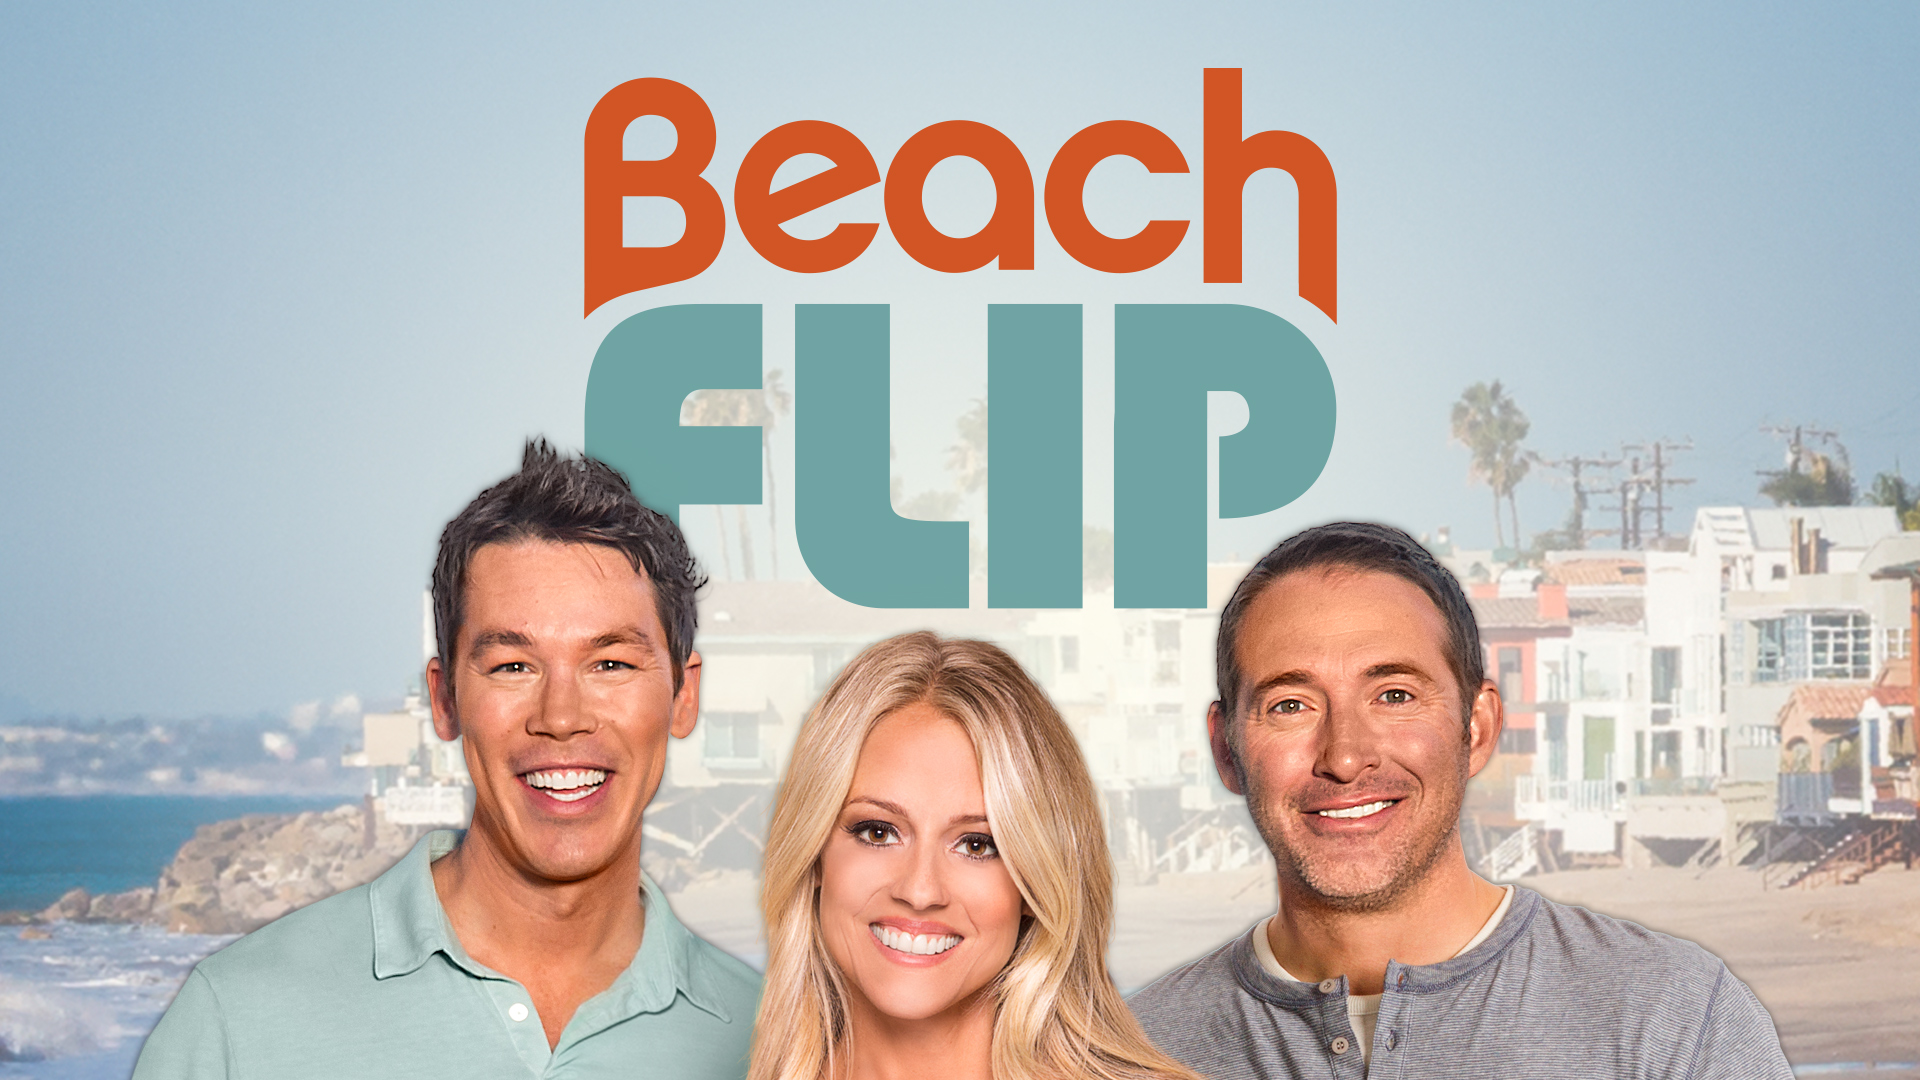 hgtv-showchip-beach-flip-v2.jpg